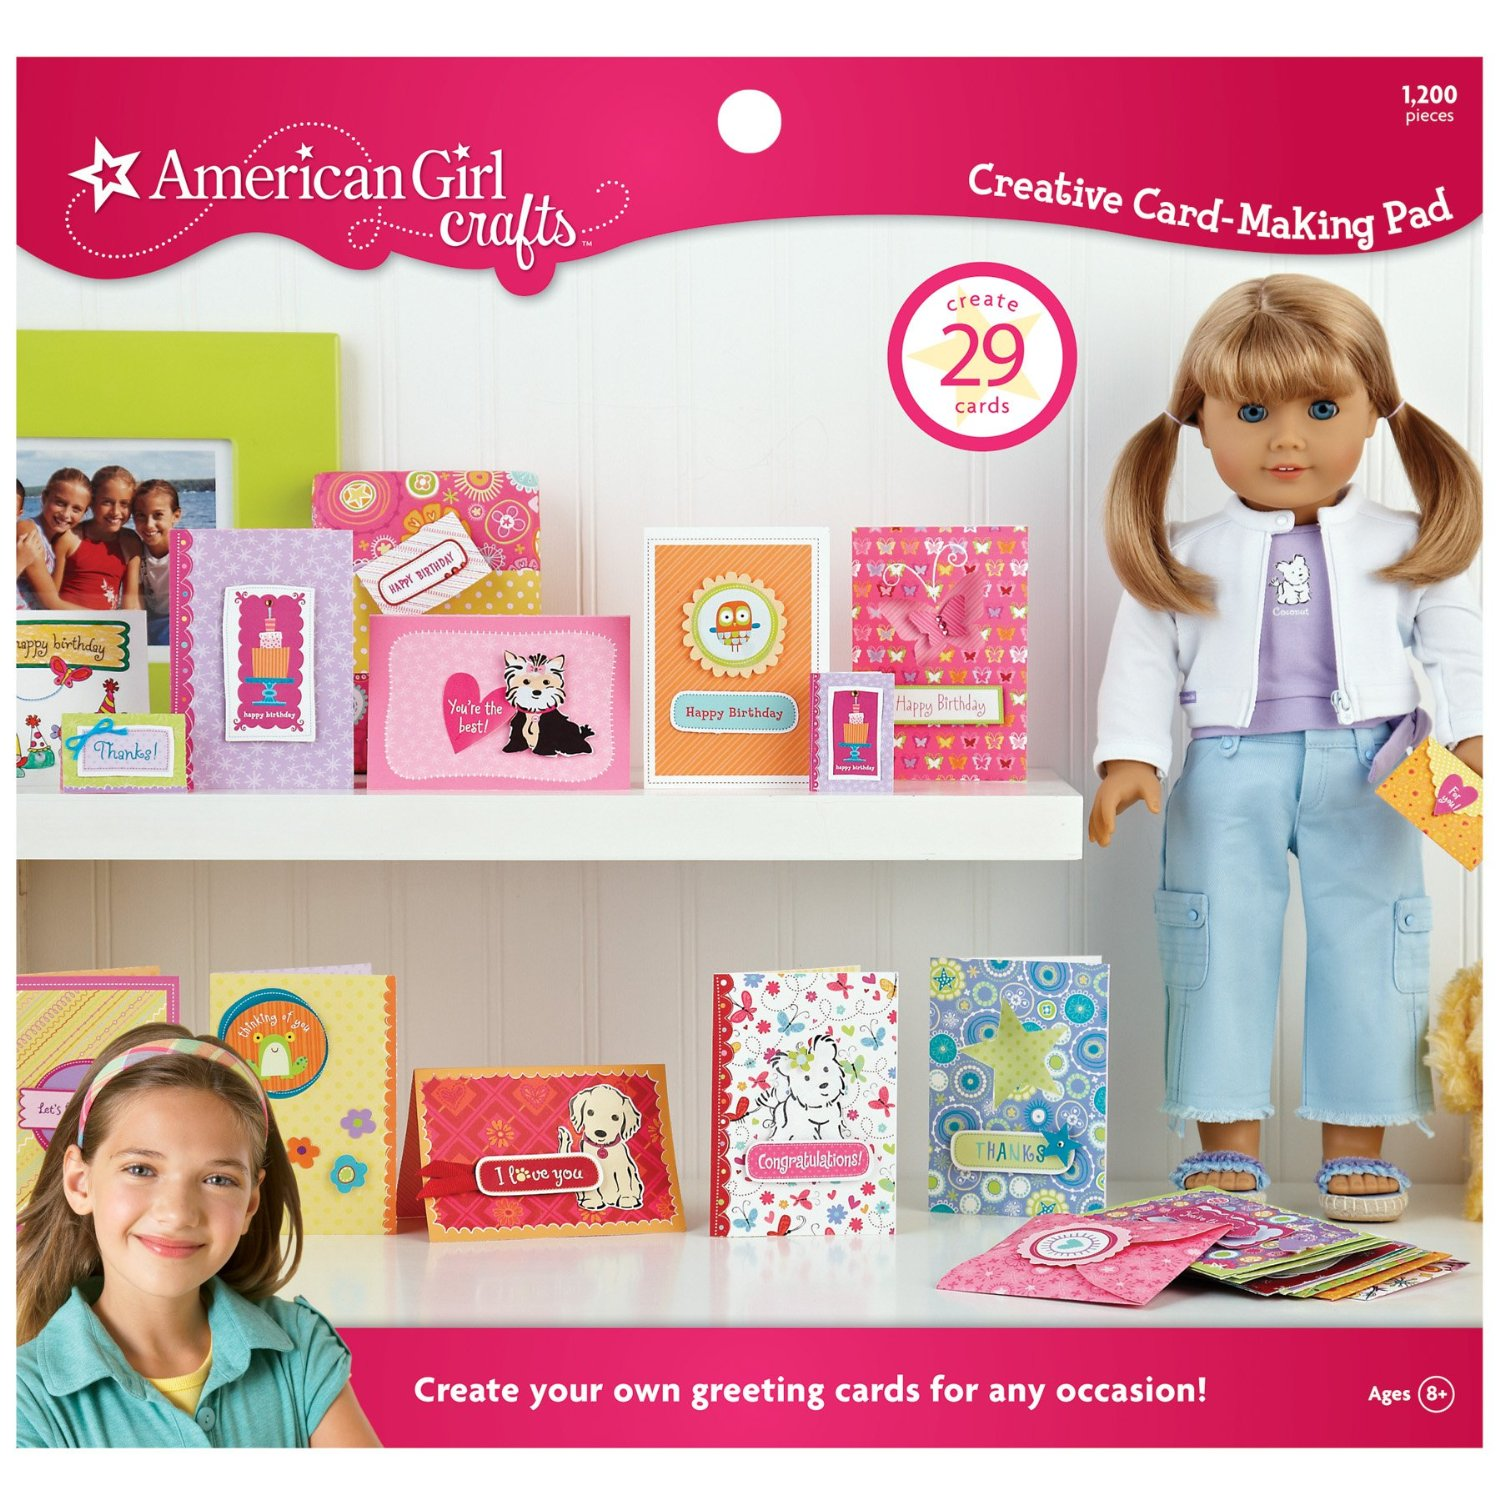 American Girl Creative Card-Making Pad Only $10.52! (Reg. $16.49!)